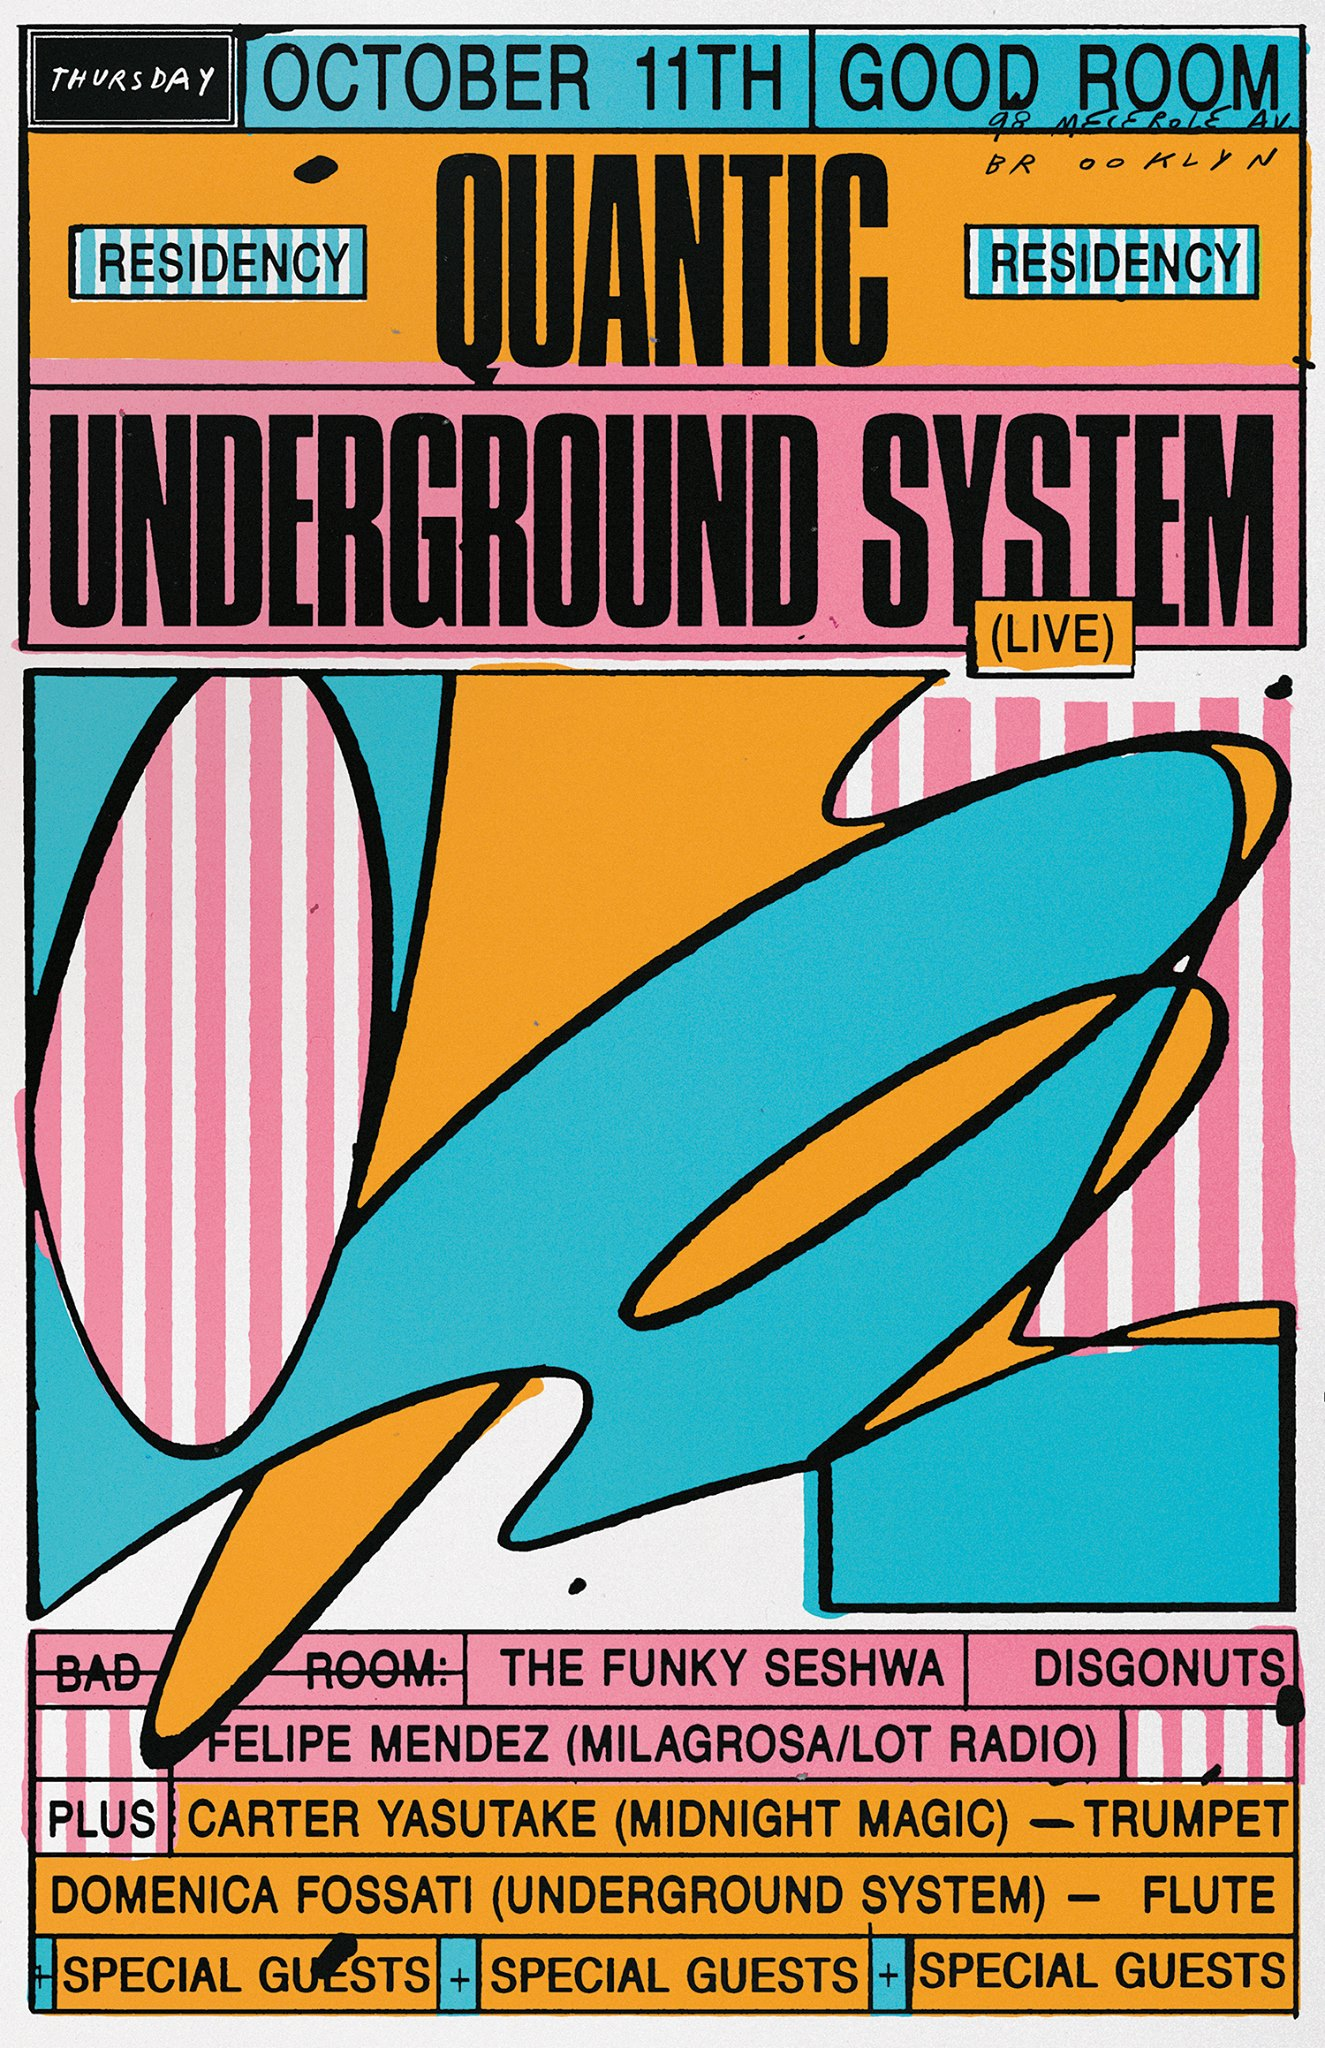 Underground System Quantic Residency October 11th 2018